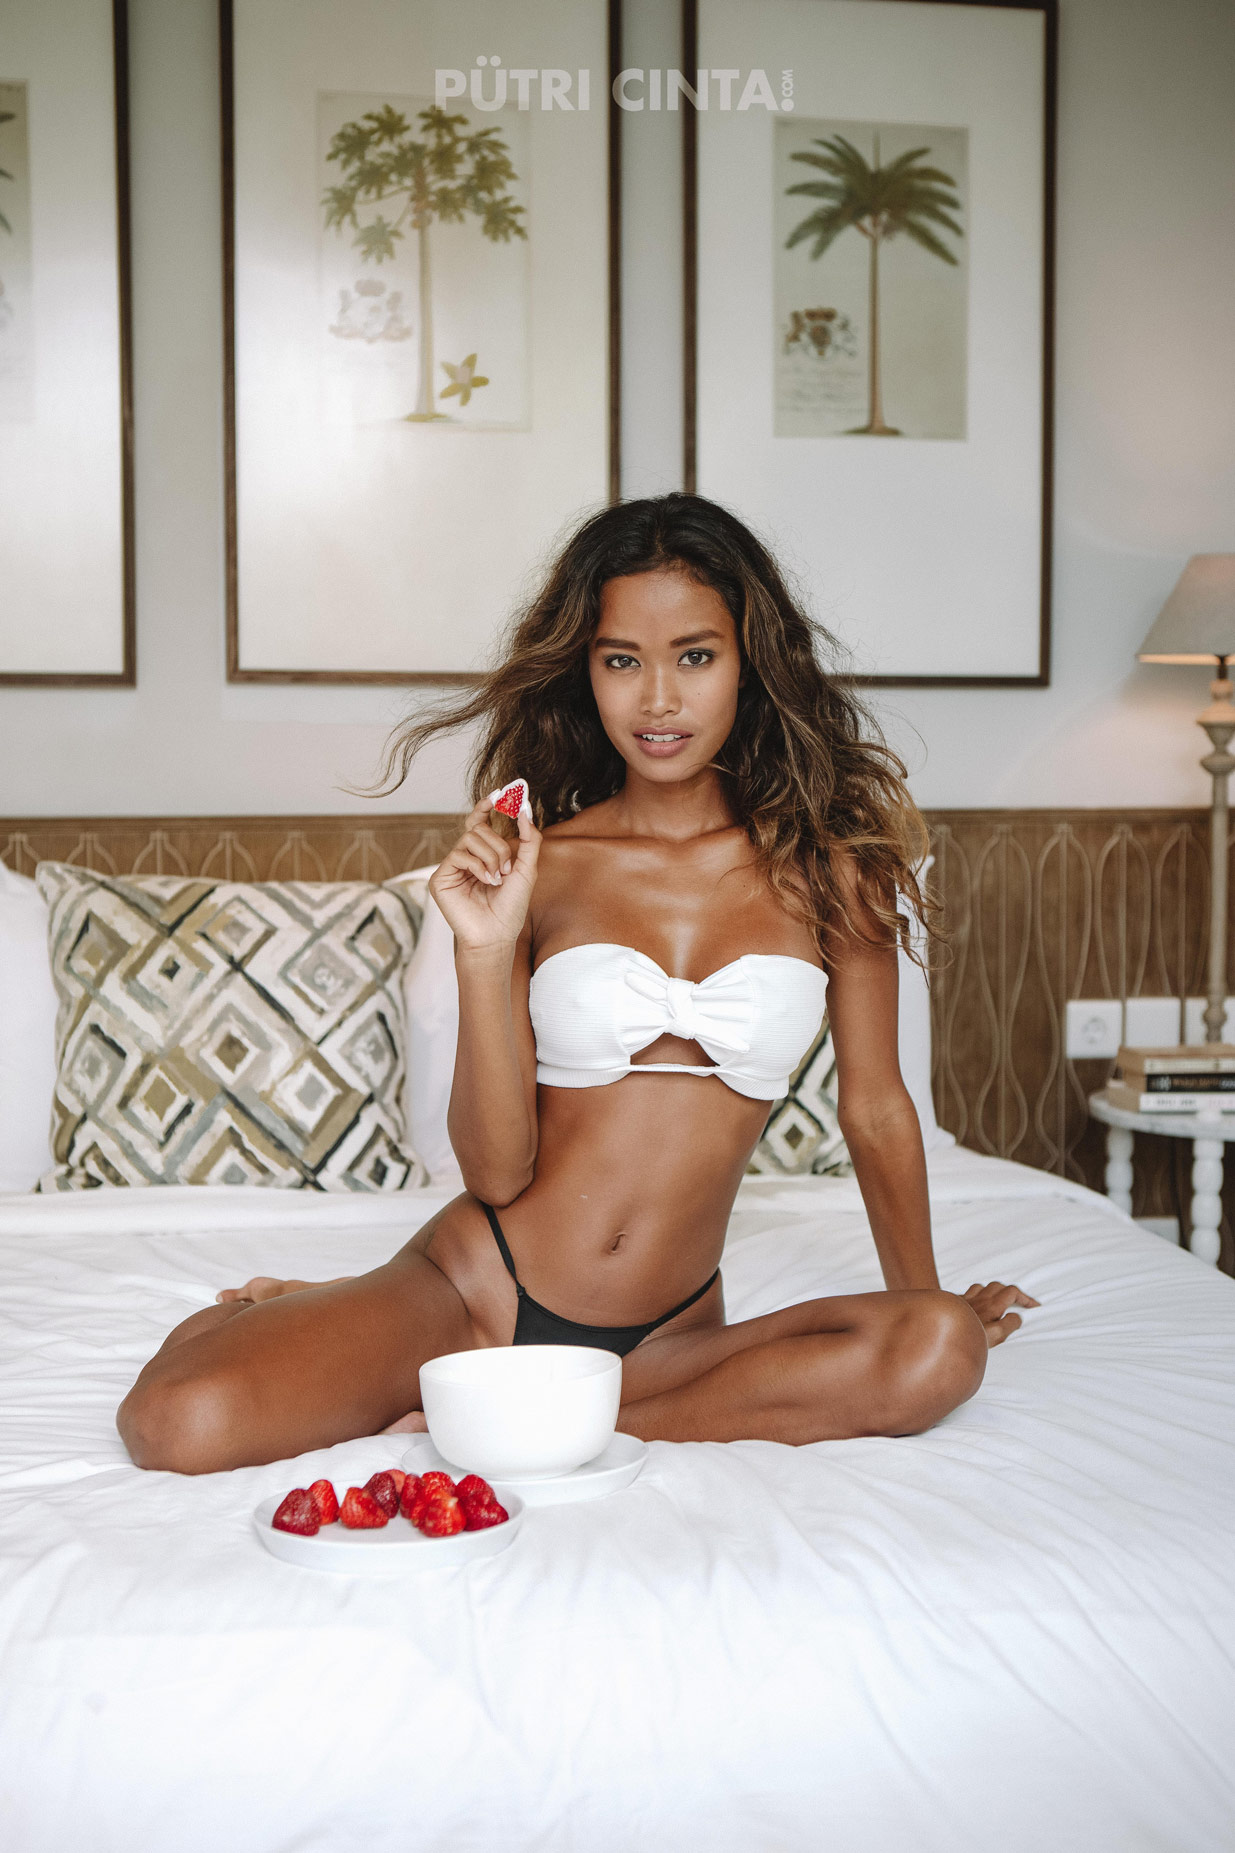 018-Strawberries-in-bed-forwebsite-10.jpg